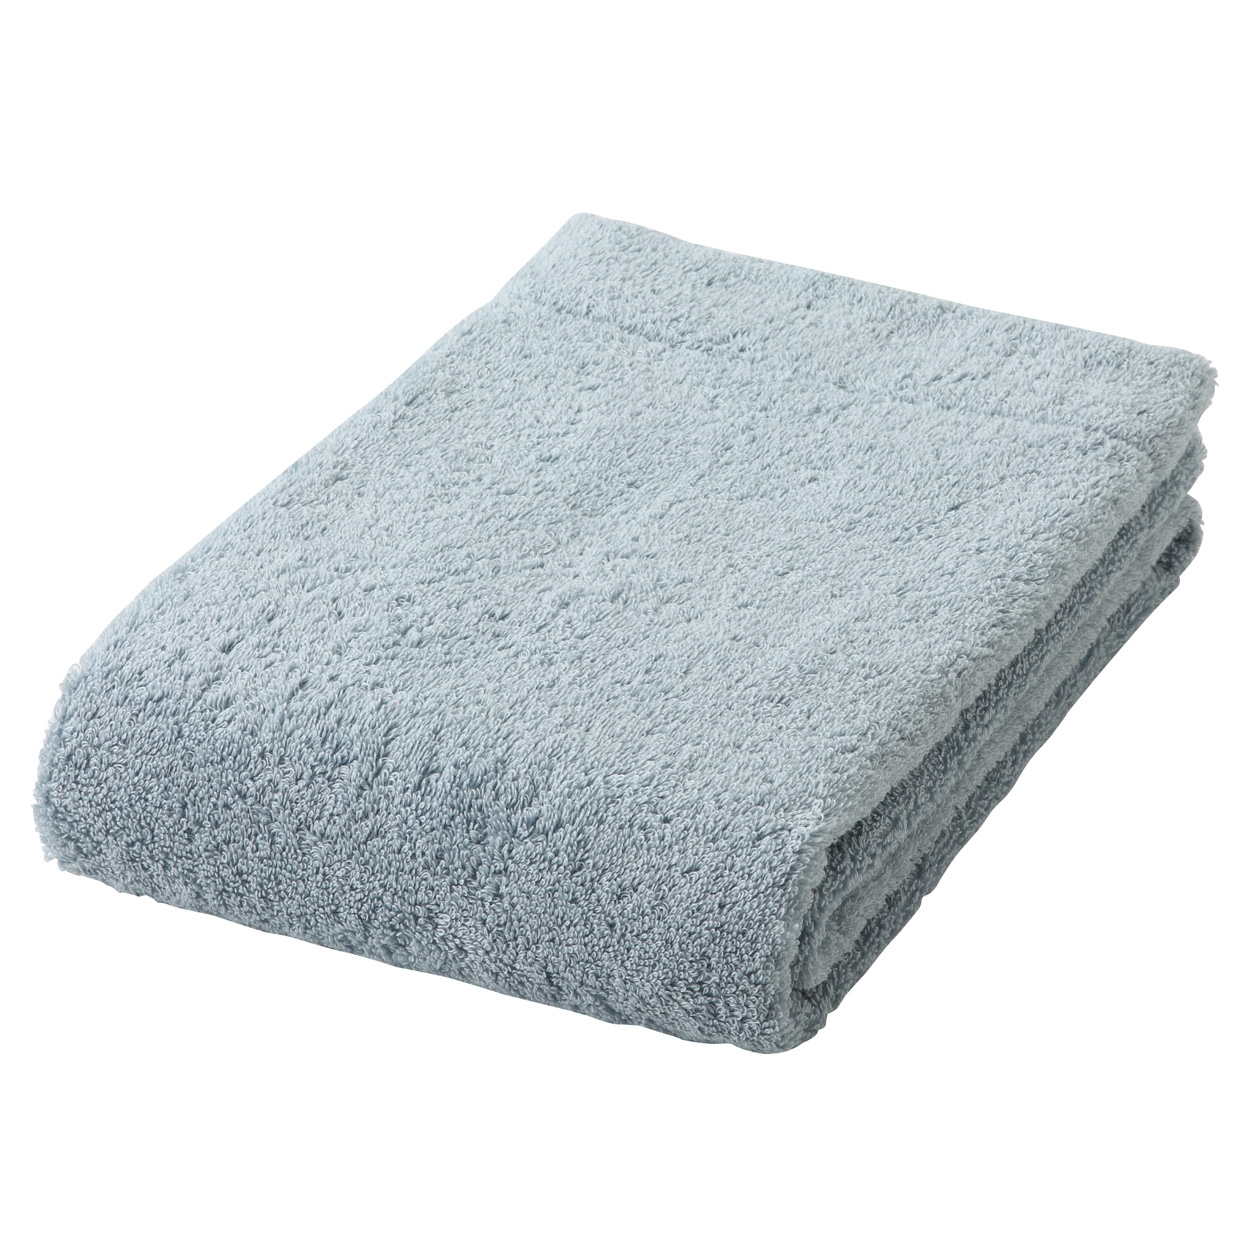 light blue medium Small Bathtowel